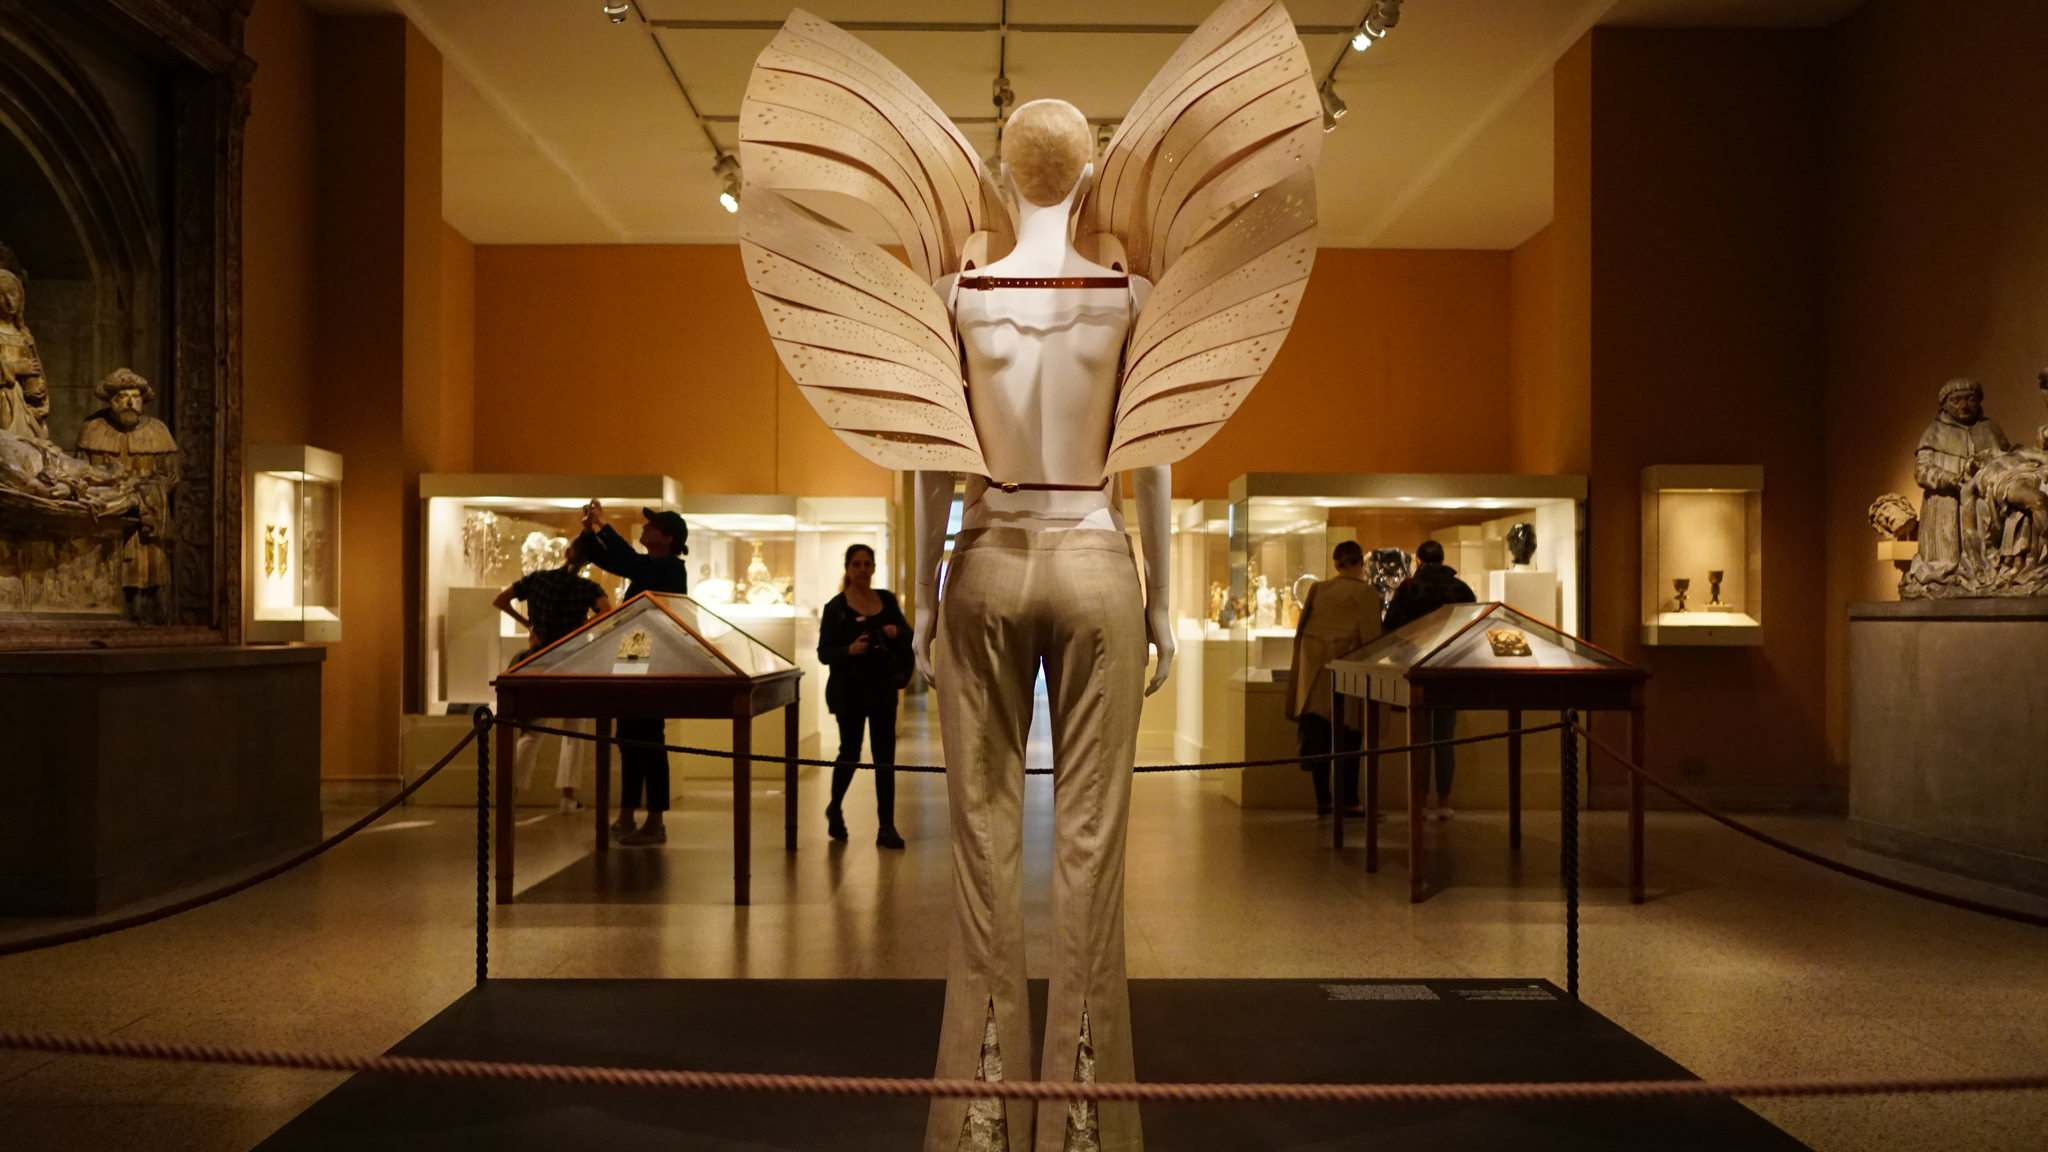 heavenly bodies14 Heavenly Bodies: Fashion and the Catholic Imagination in MET